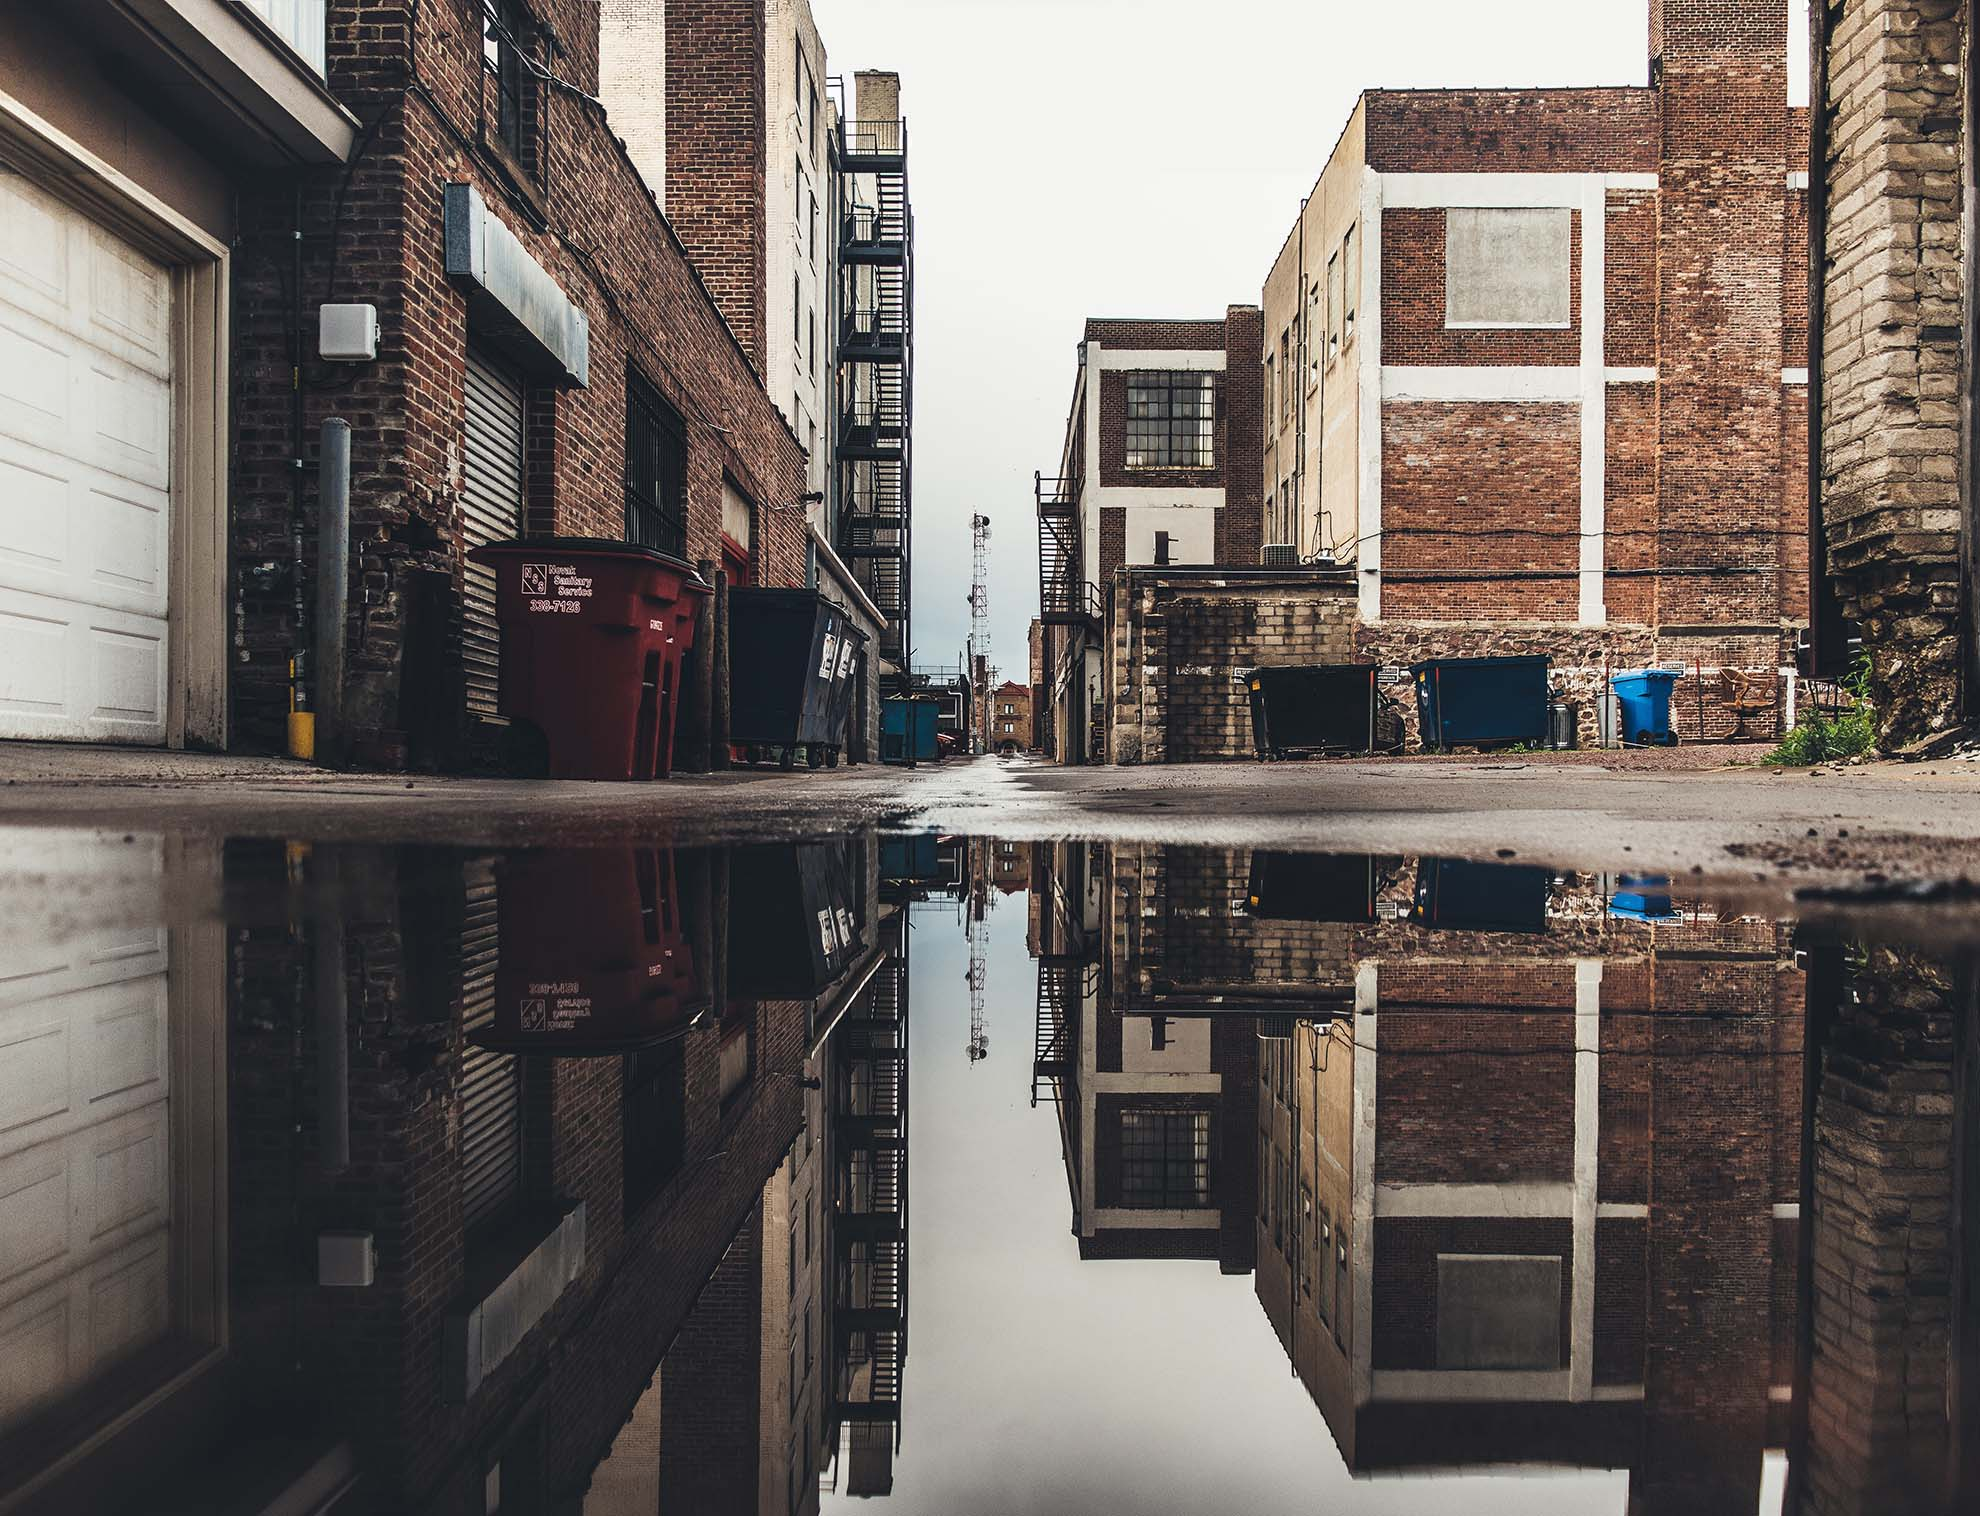 A photo of a back alley in an urban setting